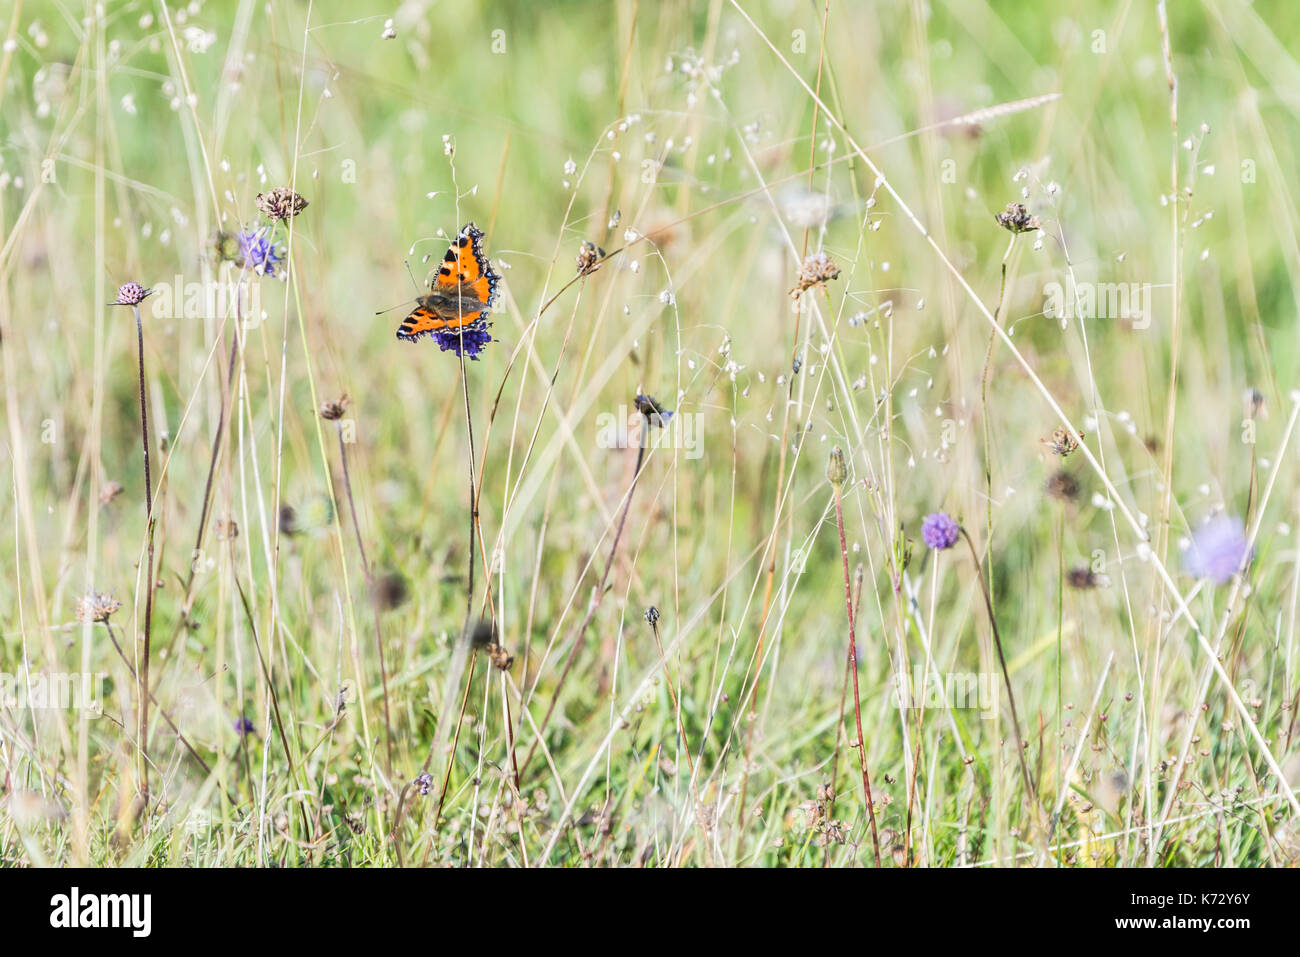 A small tortoiseshell butterfly (Aglais urticae) on wild flowers - Stock Image